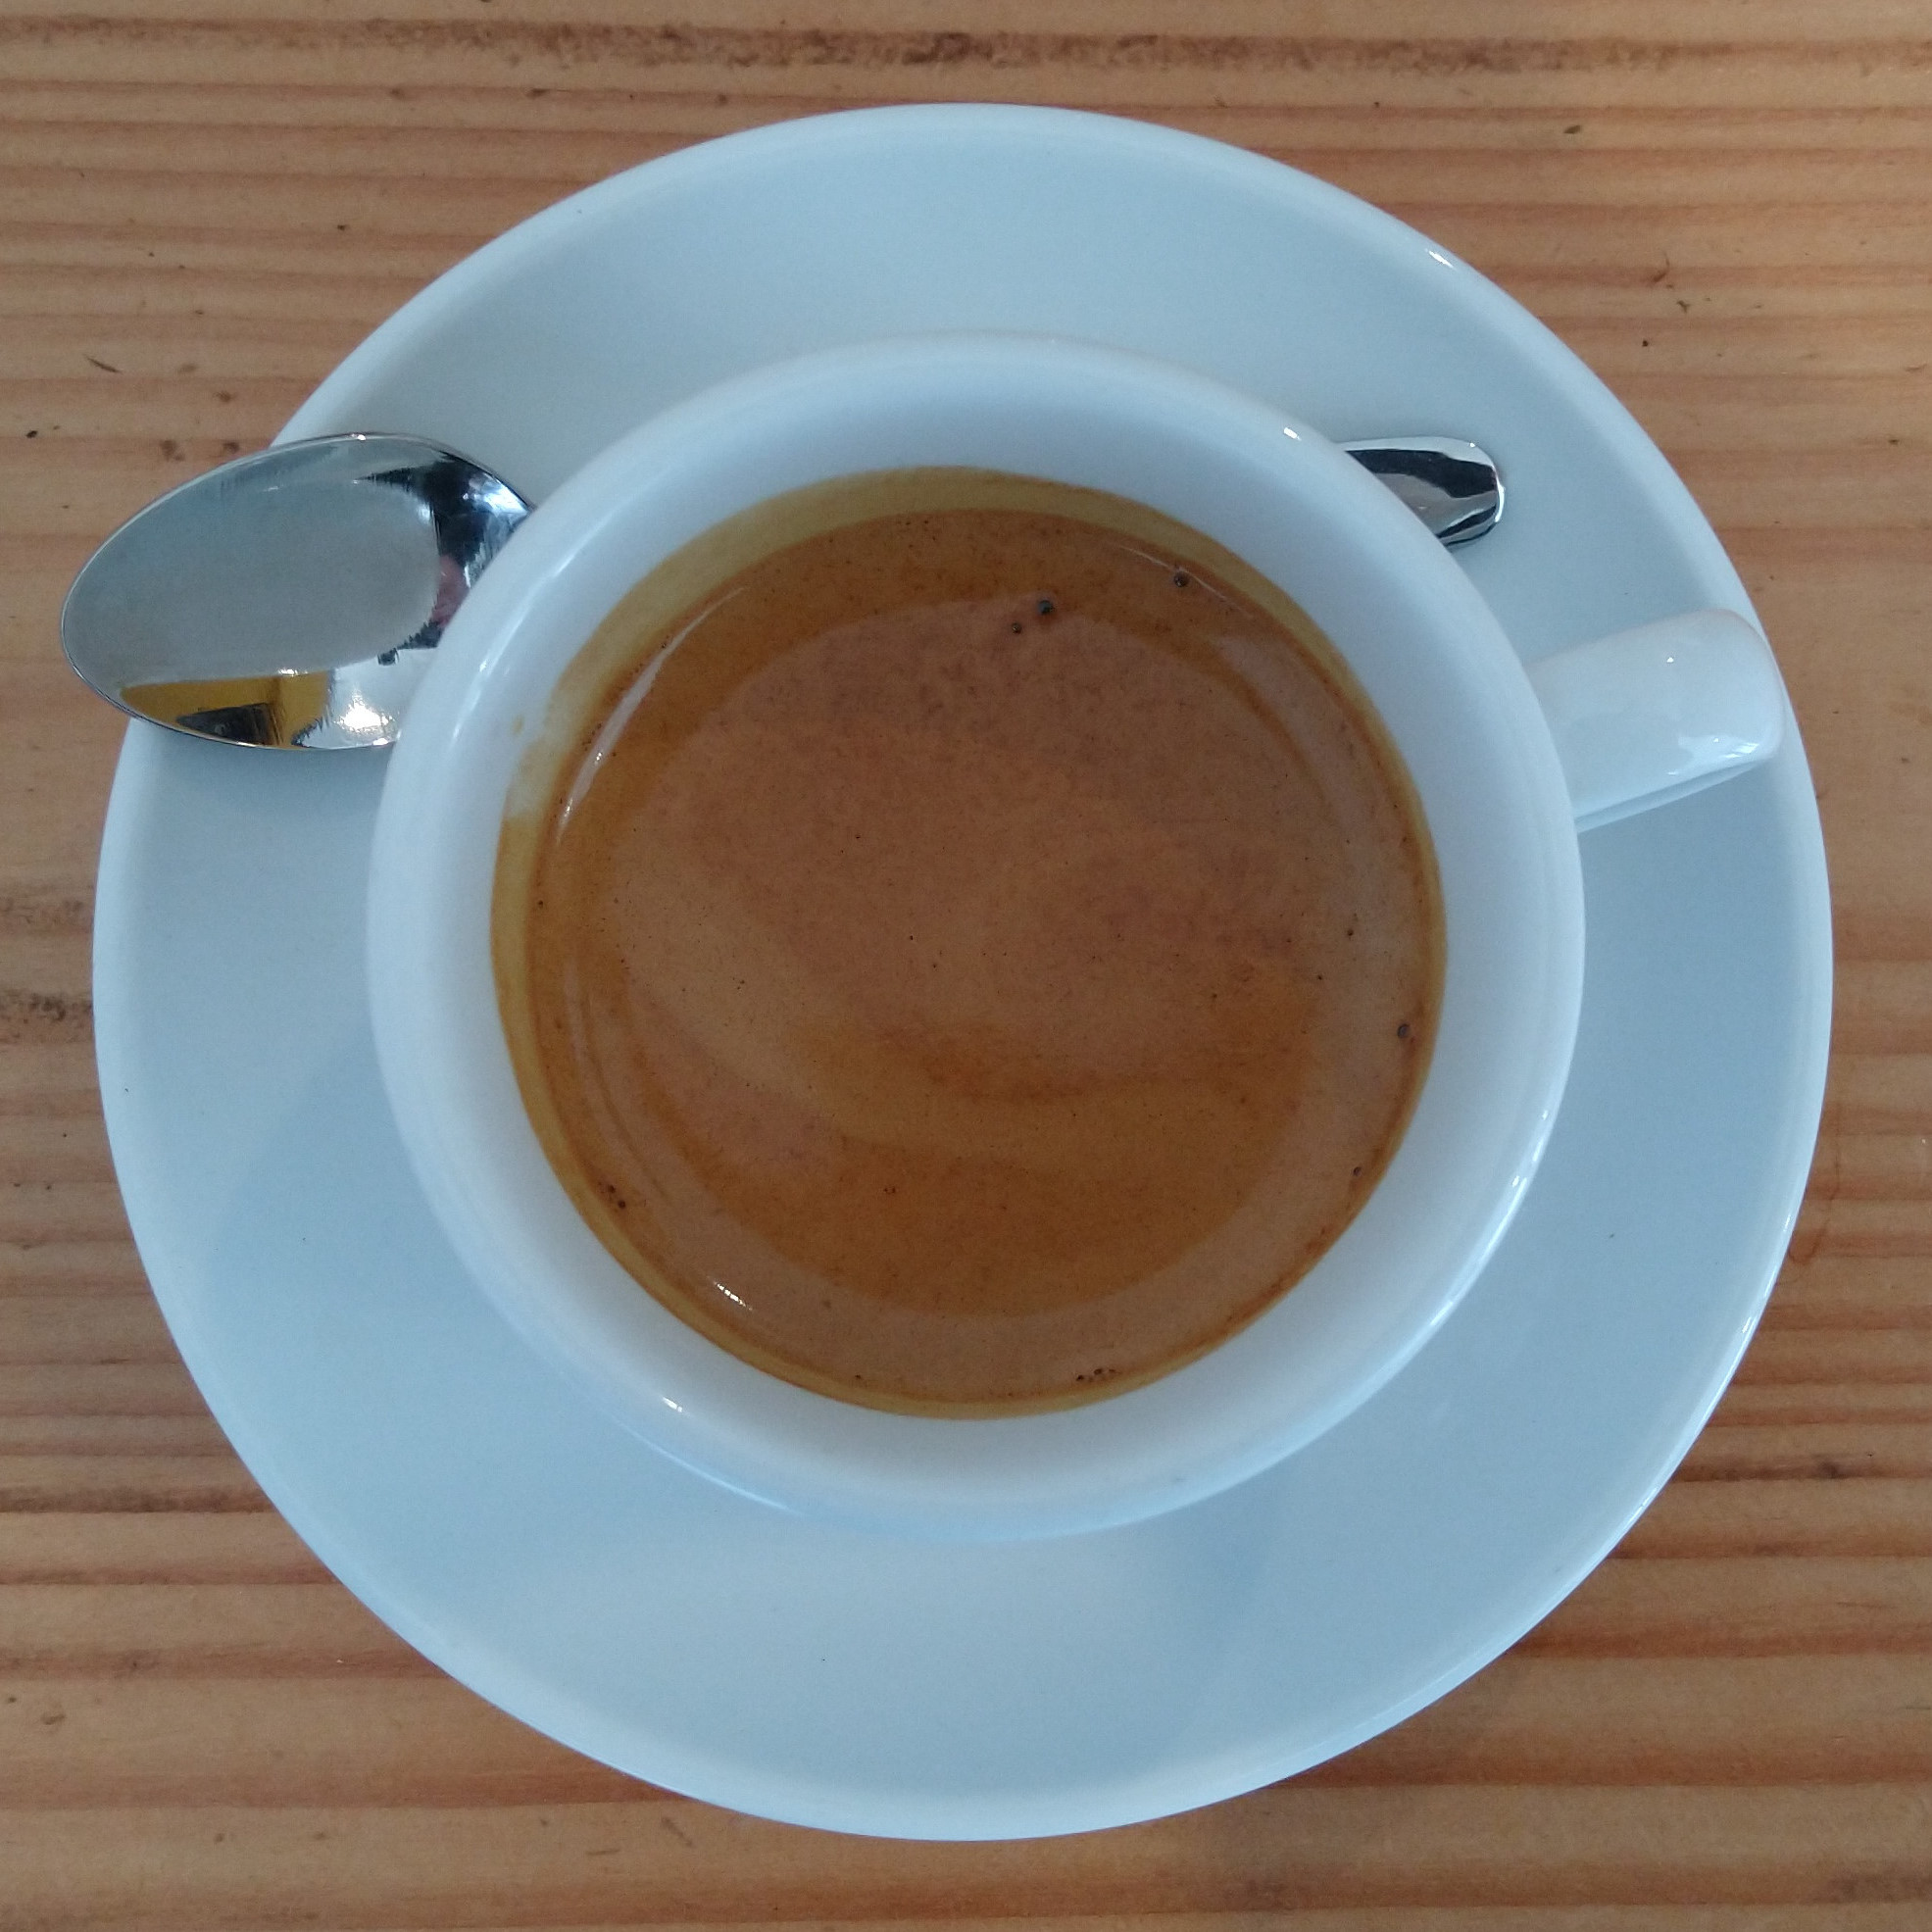 My espresso, a Colombian single-origin from Carlos Alberto Ulchur, roasted by Colonna Coffee and served in a classic white cup at Reference Coffee in Dublin.